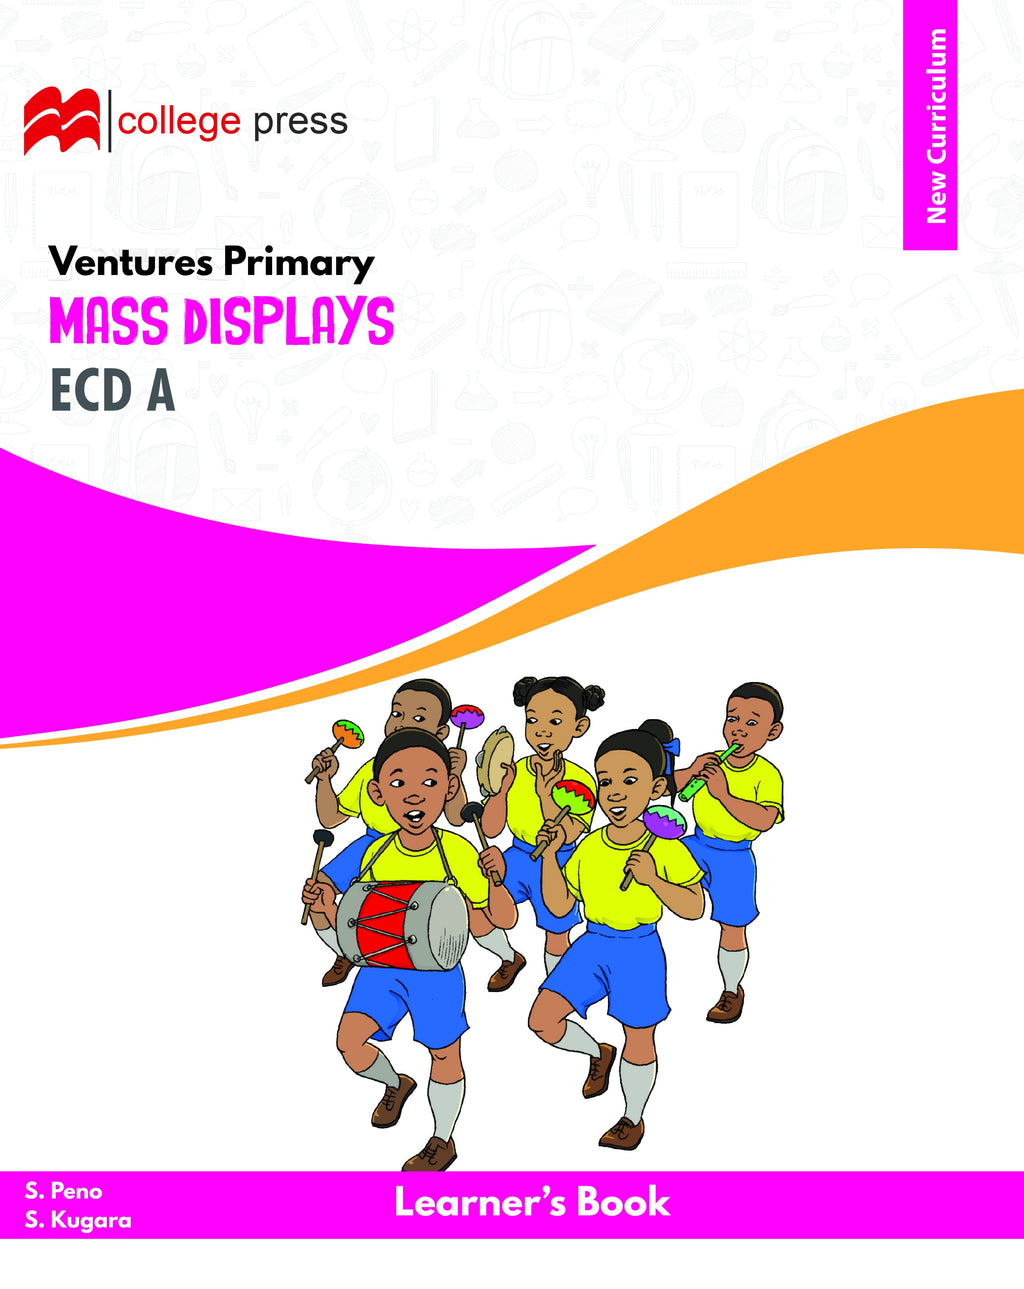 Mass Displays Learner's Book ECDA